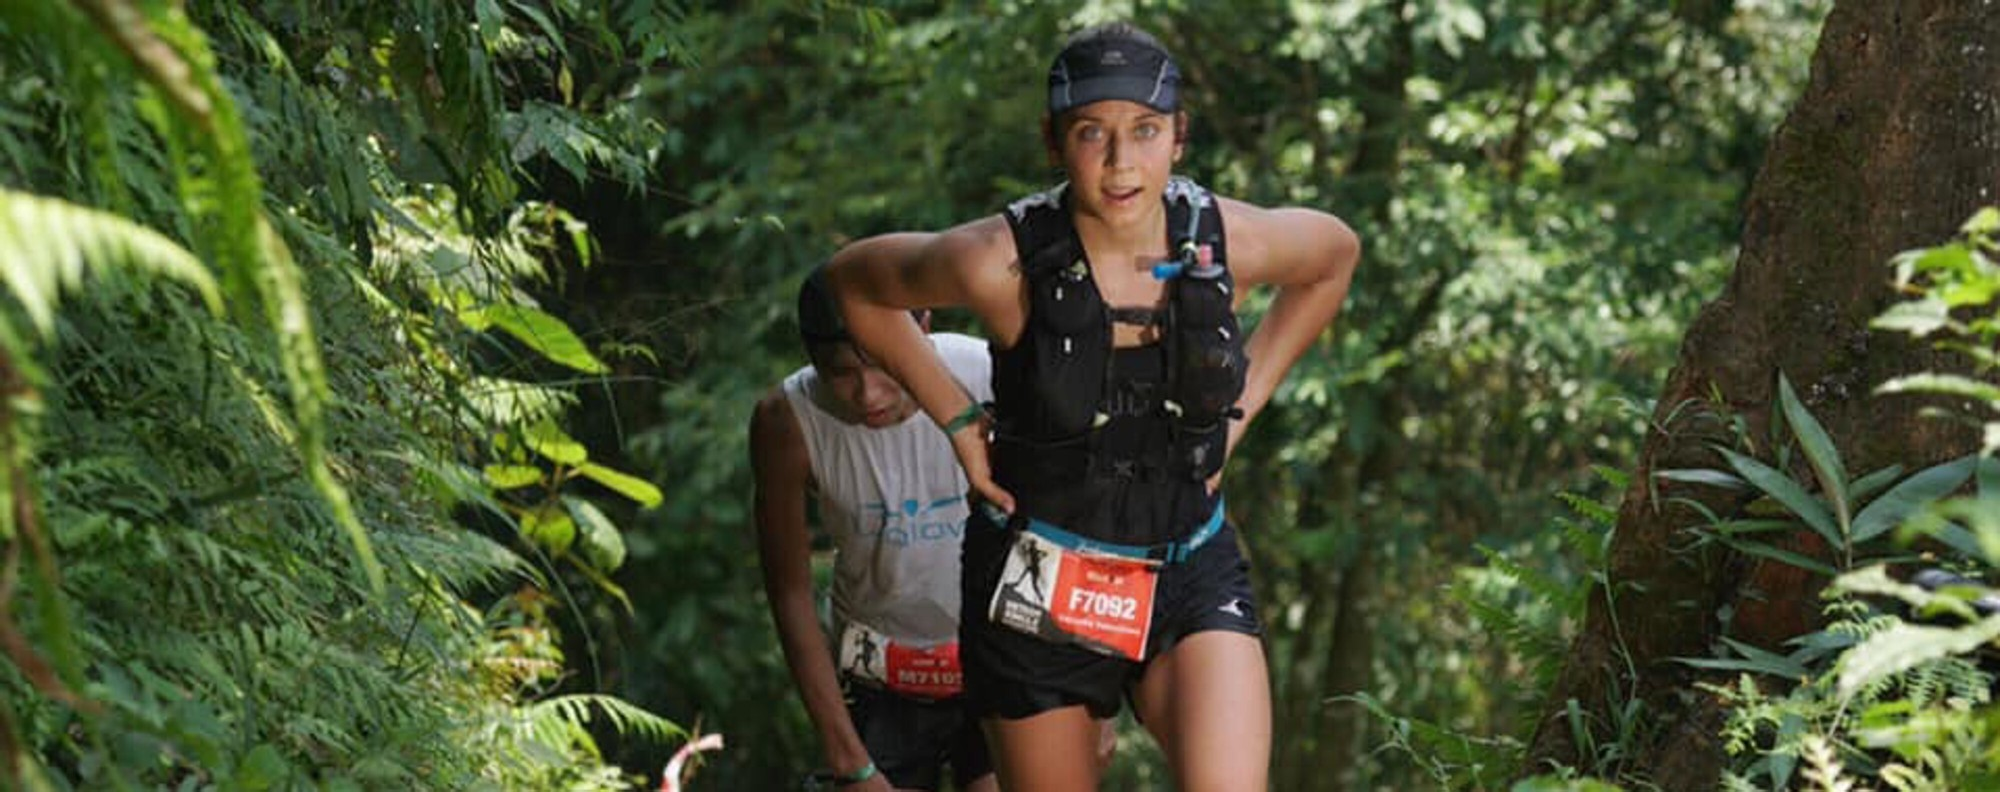 Veronika Vadovicova says Asia Trail Girls will support women's achievements and encourage newcomers to the sport. Photo: Asia Trail Master